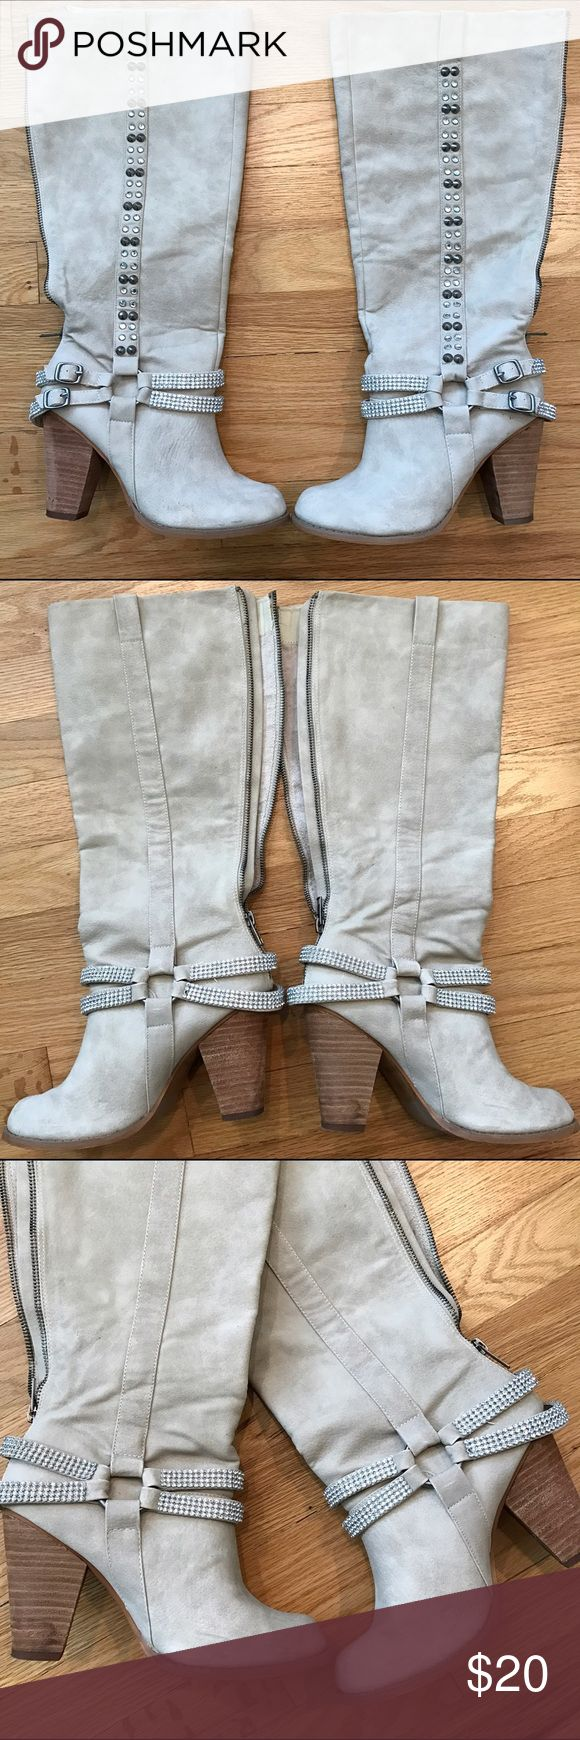 NOT RATED Women's Knee High Boots Rhinestone 6.5 NOT RATED Women's Knee high Boots.Zip Up and rhinestone Detail.  Condition: Excellent condition overall  Heel height: 3.5 inches Material: man made Size: Women's 6.5 Color: Light beige / cream Not Rated Shoes Heeled Boots